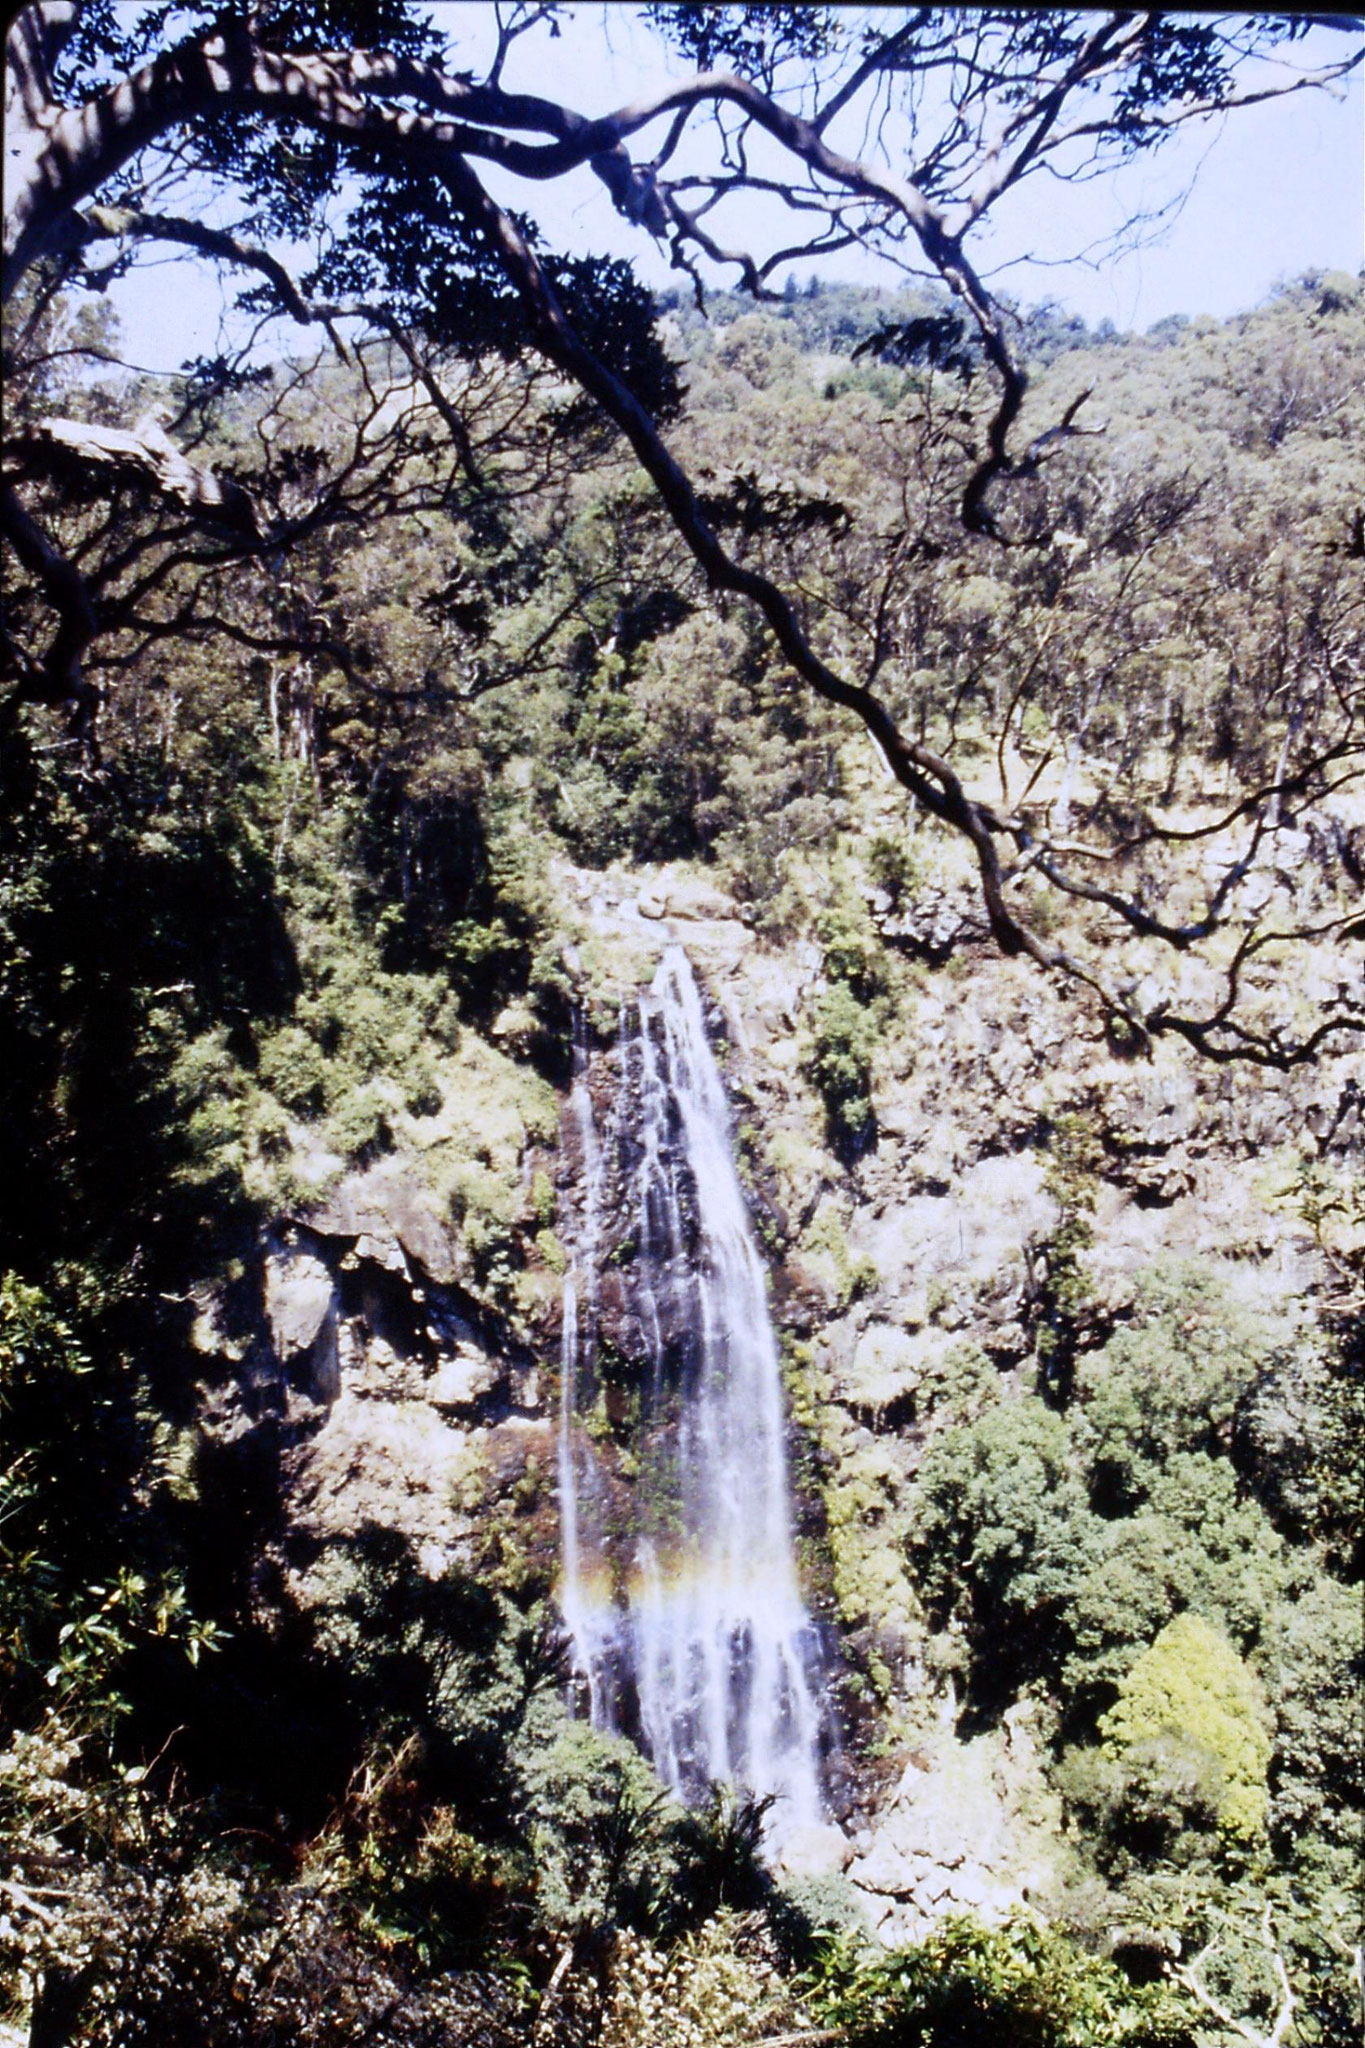 13/10/1990: 13: Mt Lamington, Moran's Falls